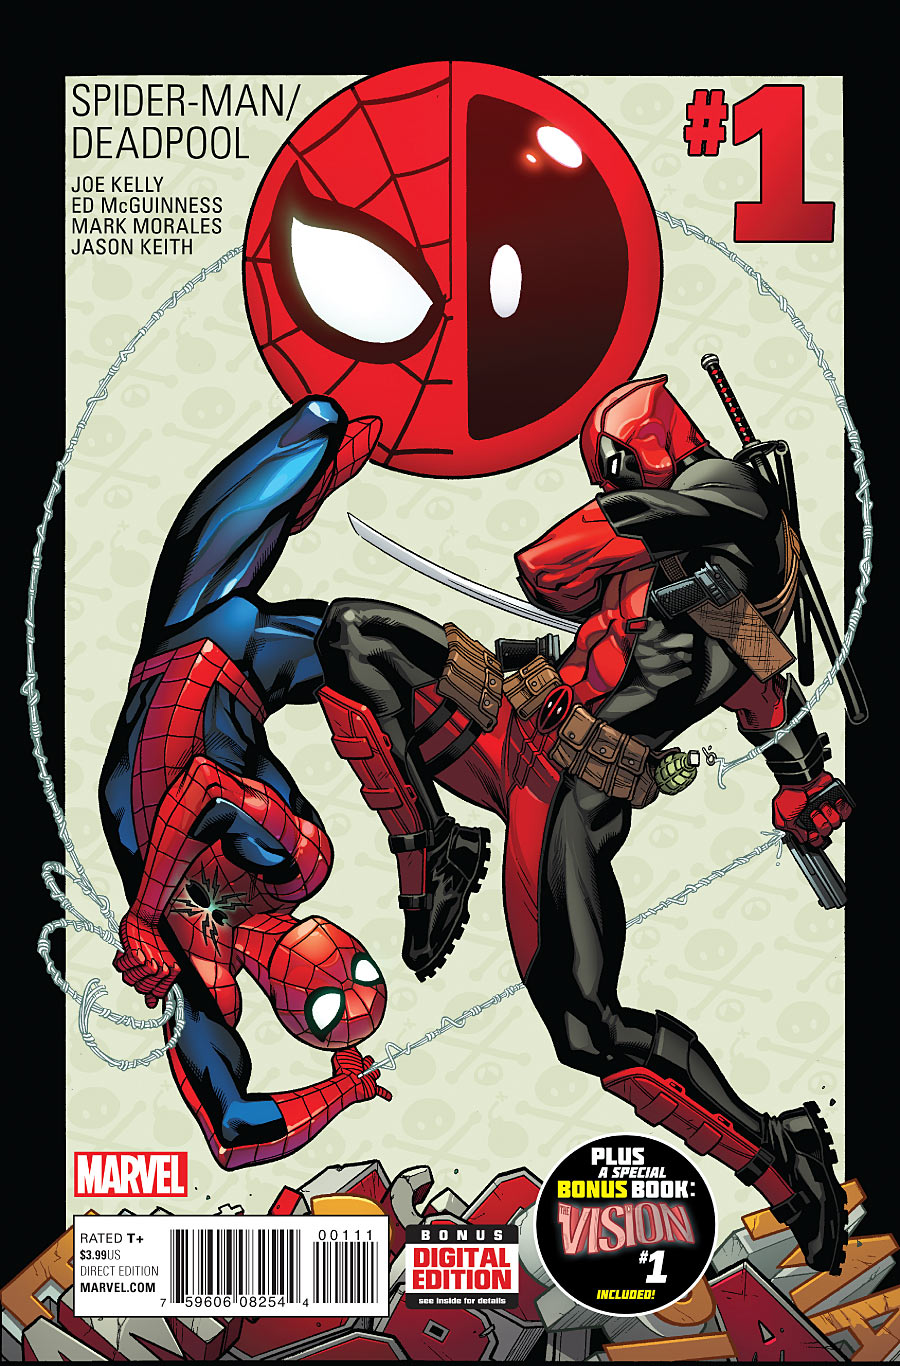 Spider-Man/Deadpool Vol 1 1 | Marvel Database | Fandom powered by ...